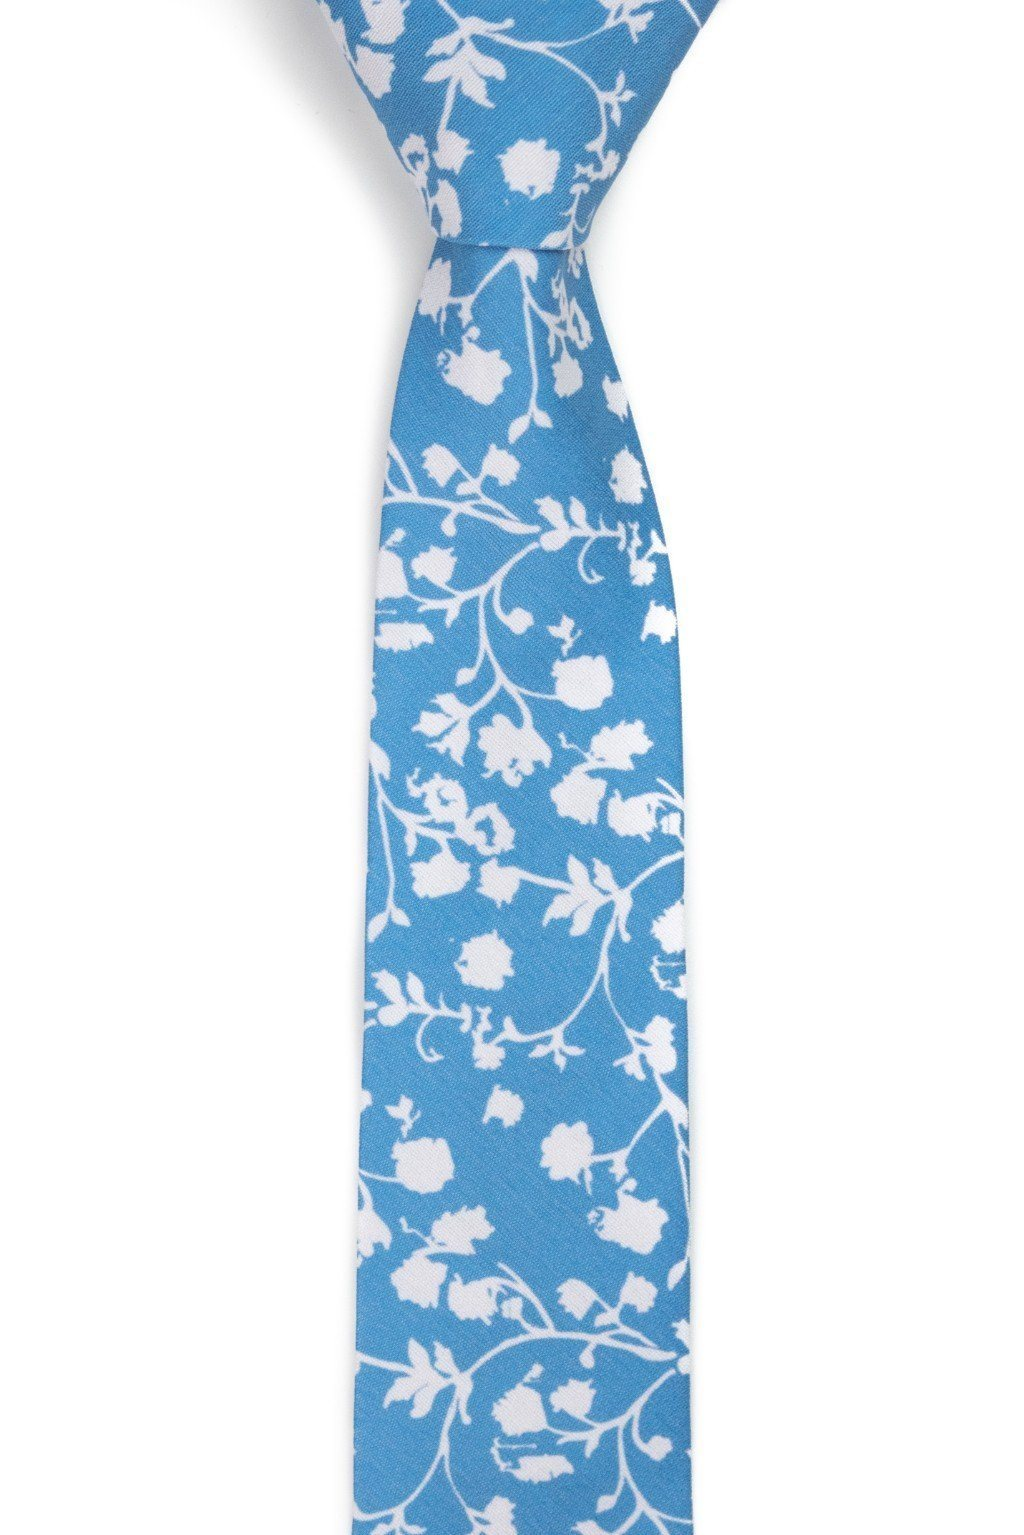 Crater - Light Blue Floral Tie